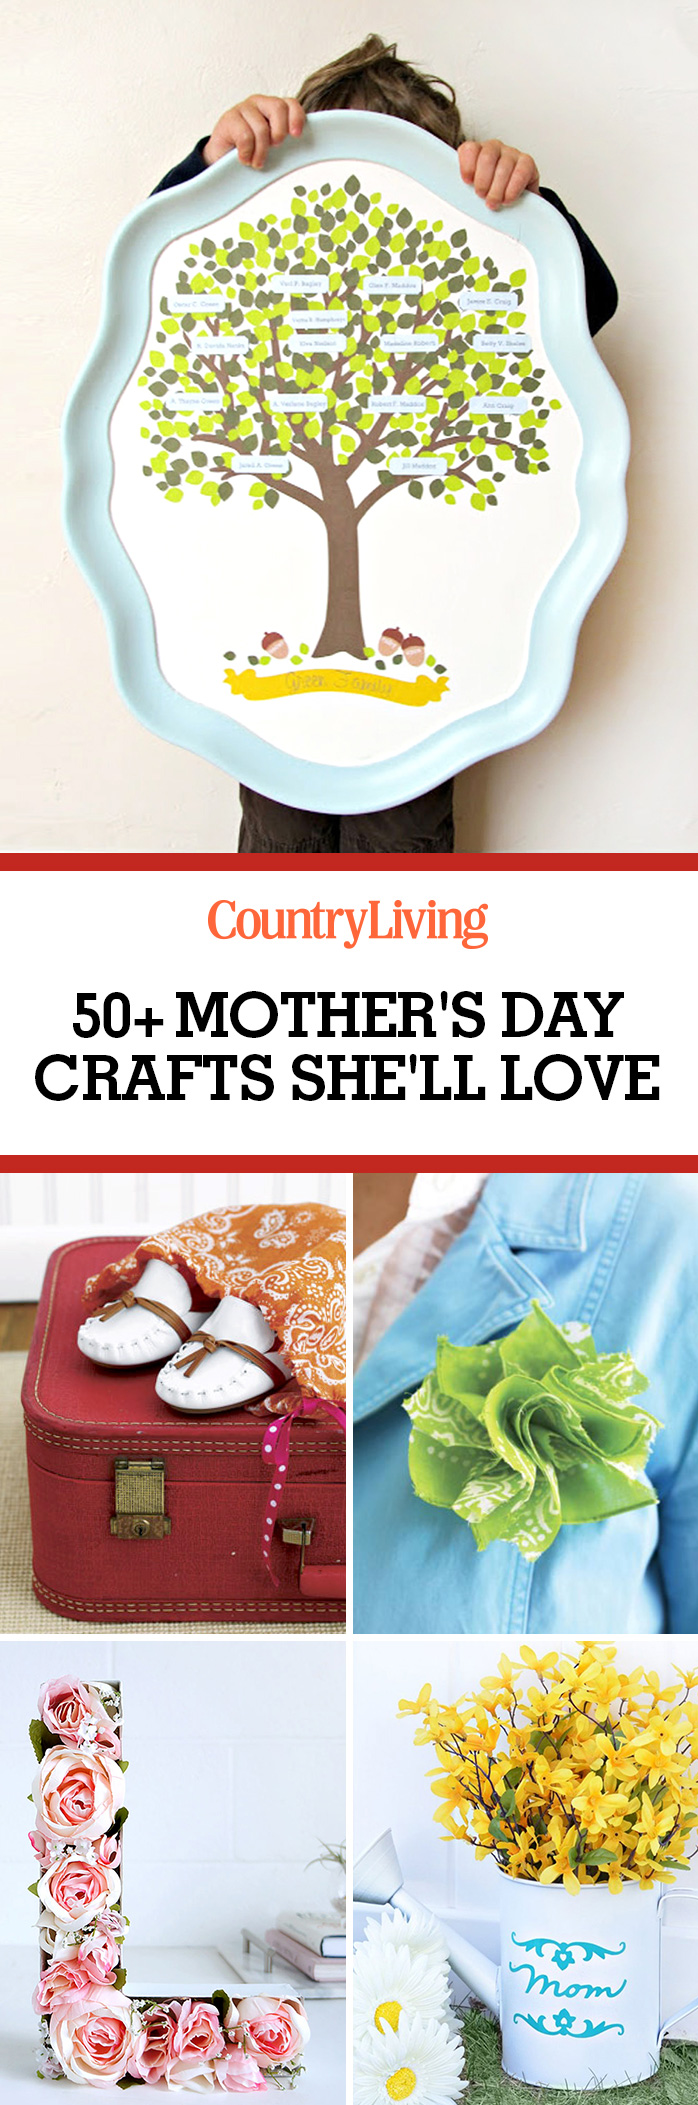 56 easy mothers day crafts diy gifts for mom ideas for What to make for mother s day gift ideas